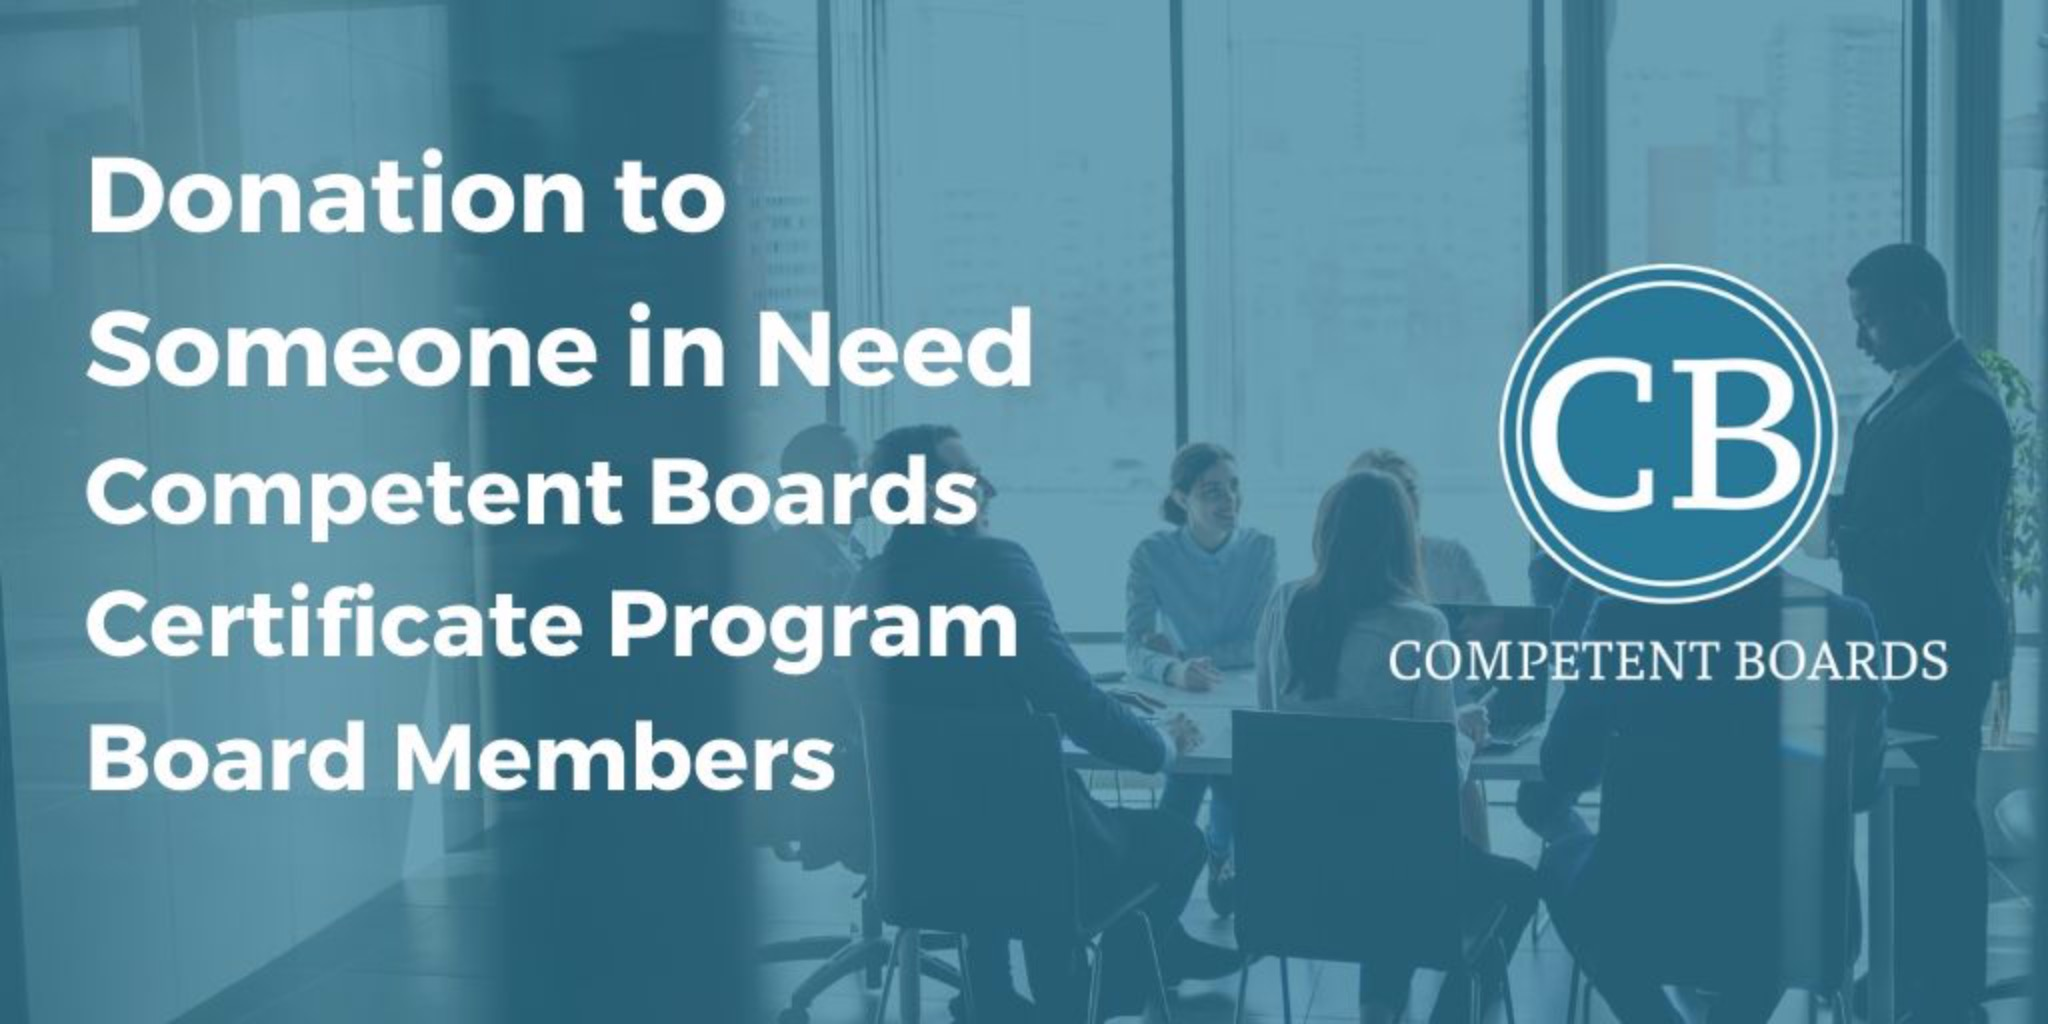 Certificate Program Board Members Sept - Mar: Donation to Someone In Need